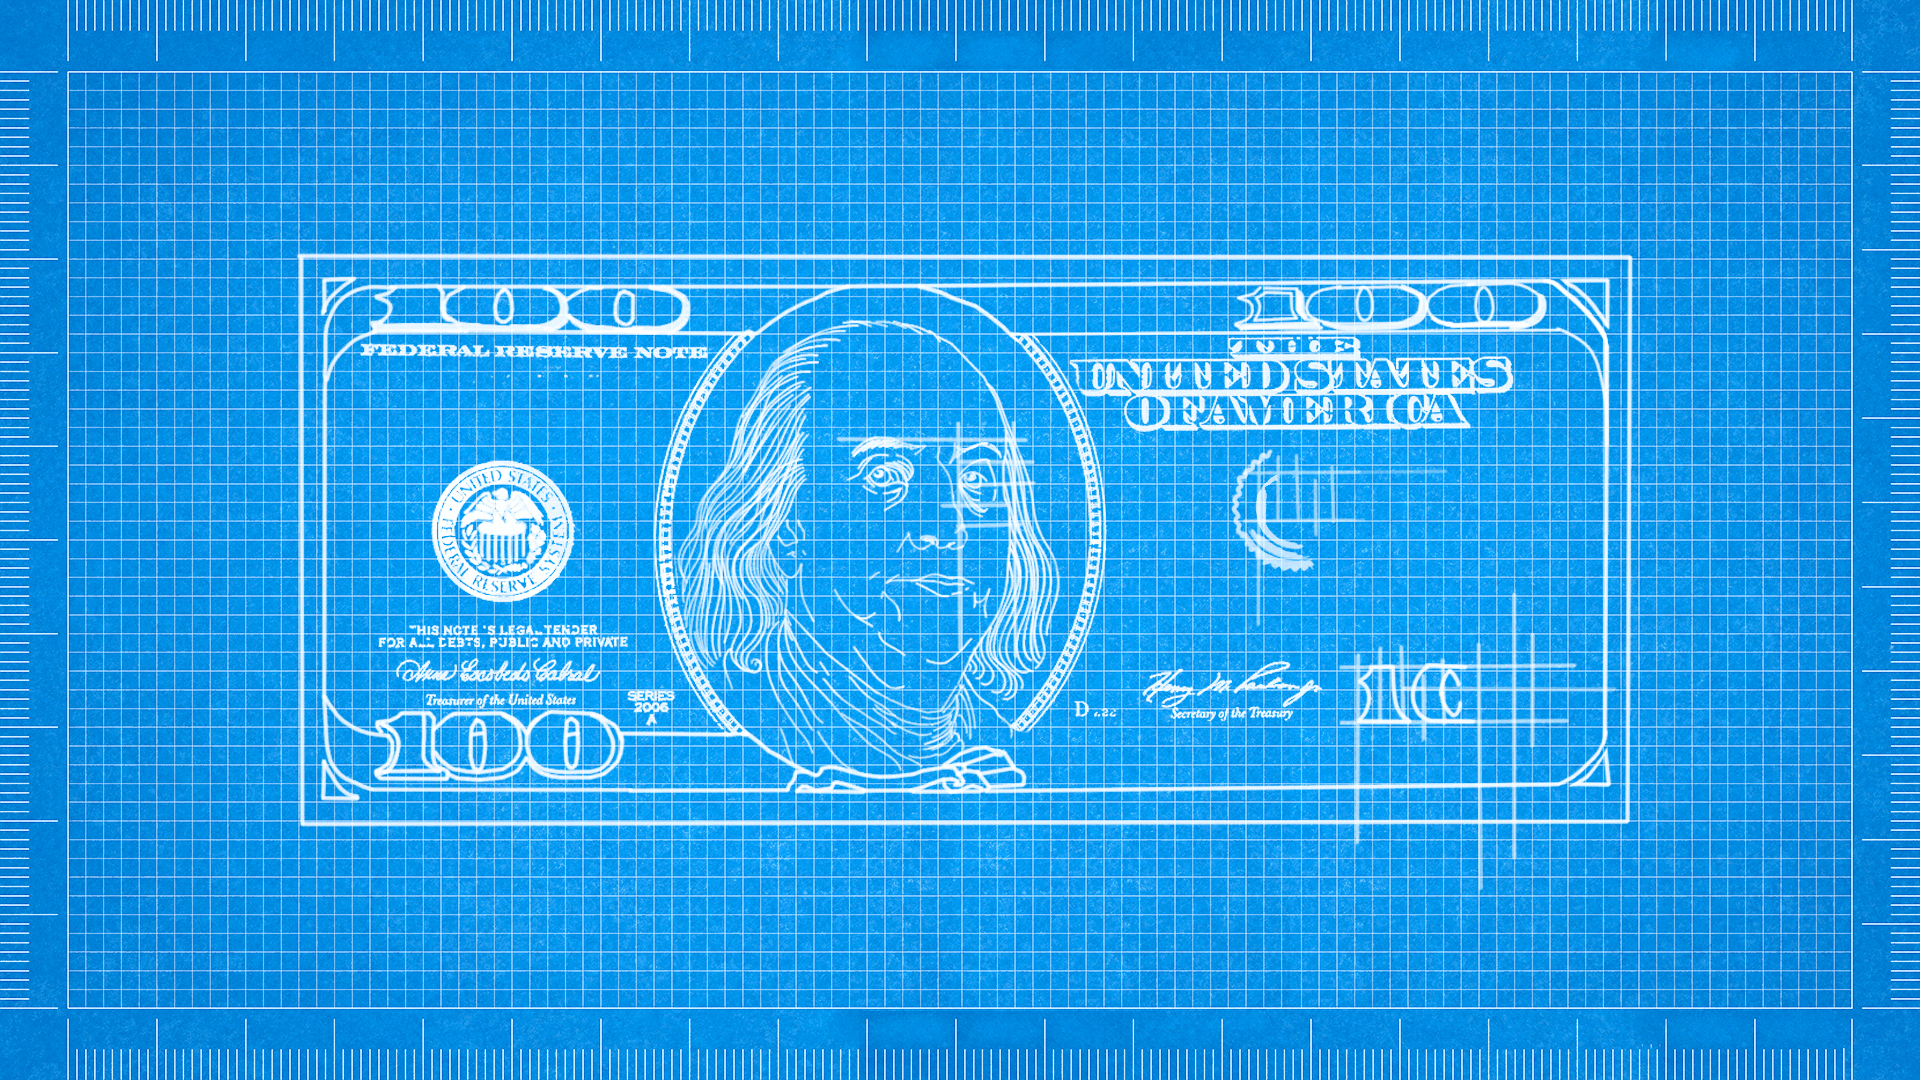 Illustration of a blueprint drawing of an uncompleted hundred dollar bill.